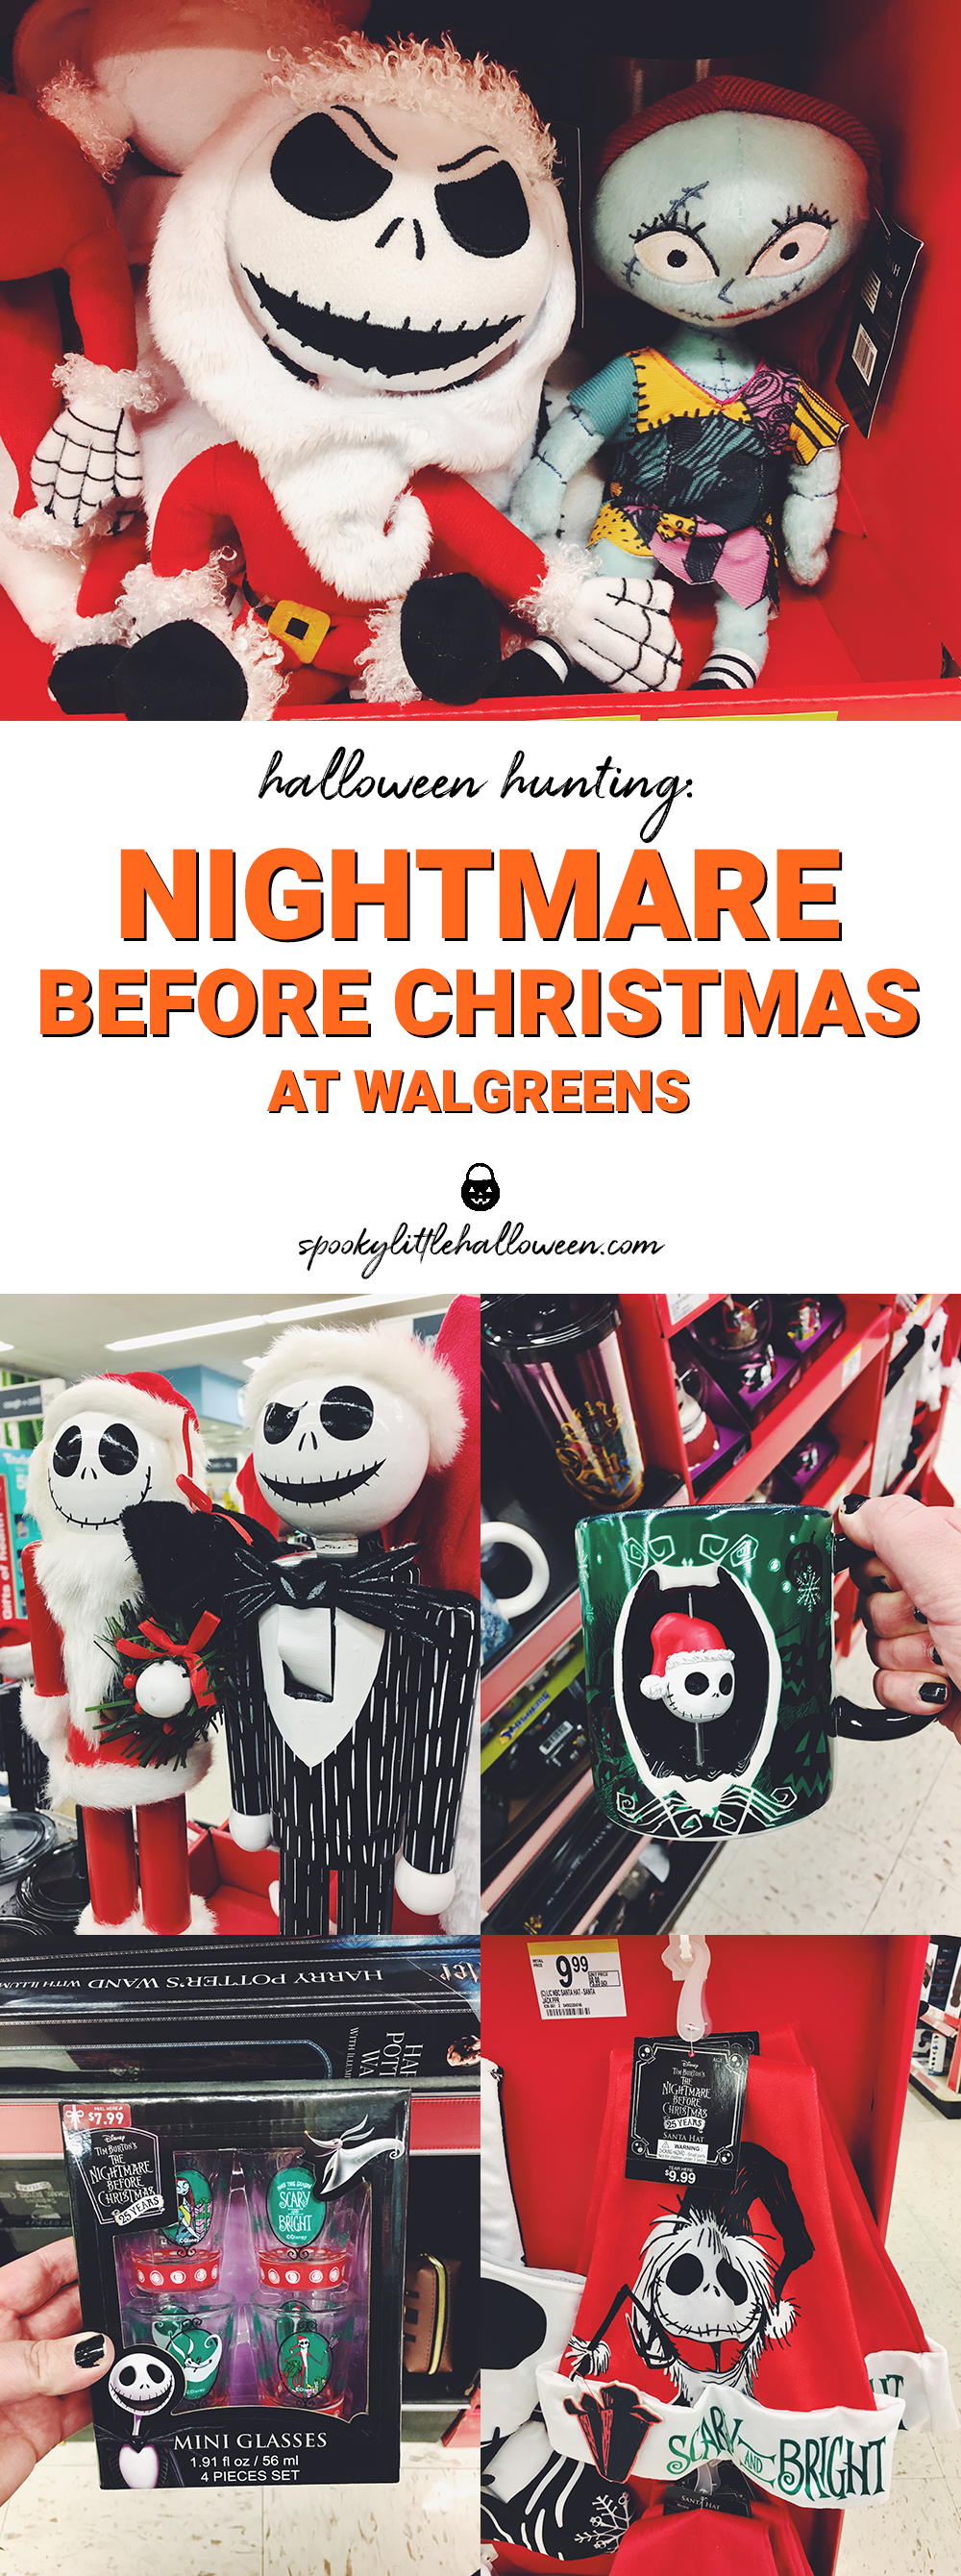 Make your holiday spooky with this Nightmare Before Christmas decor ...